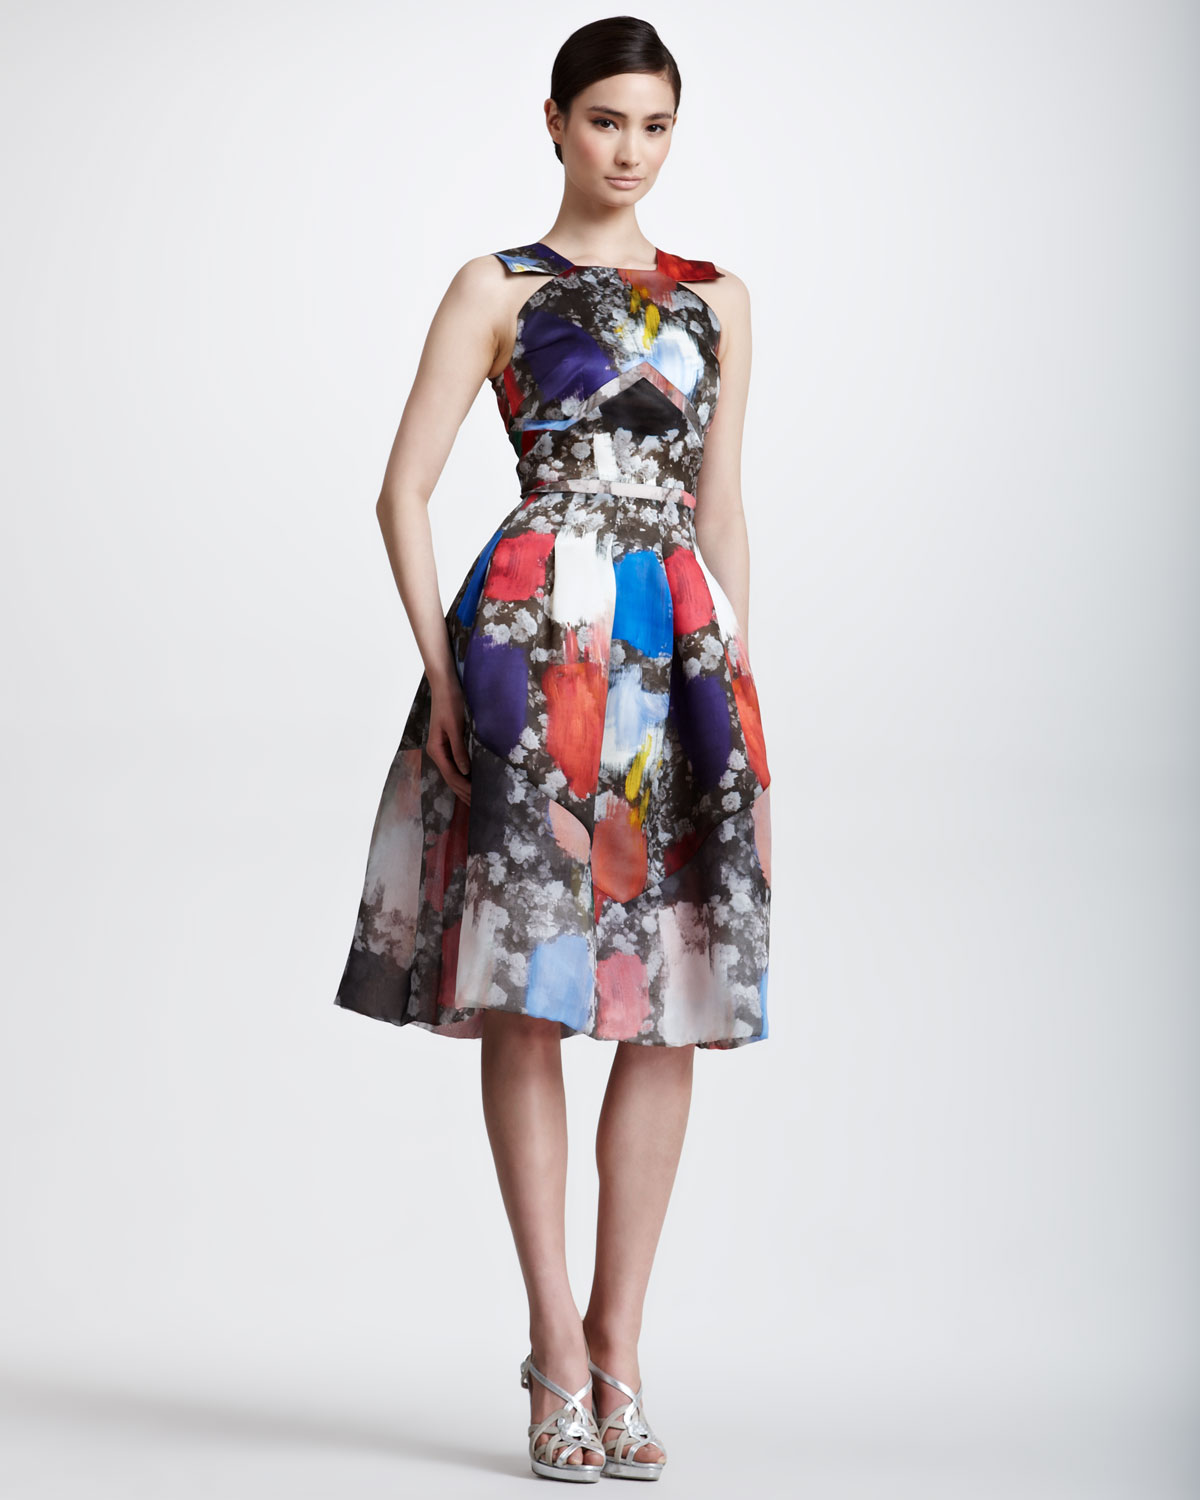 Christopher Kane Dresses View Fullscreen